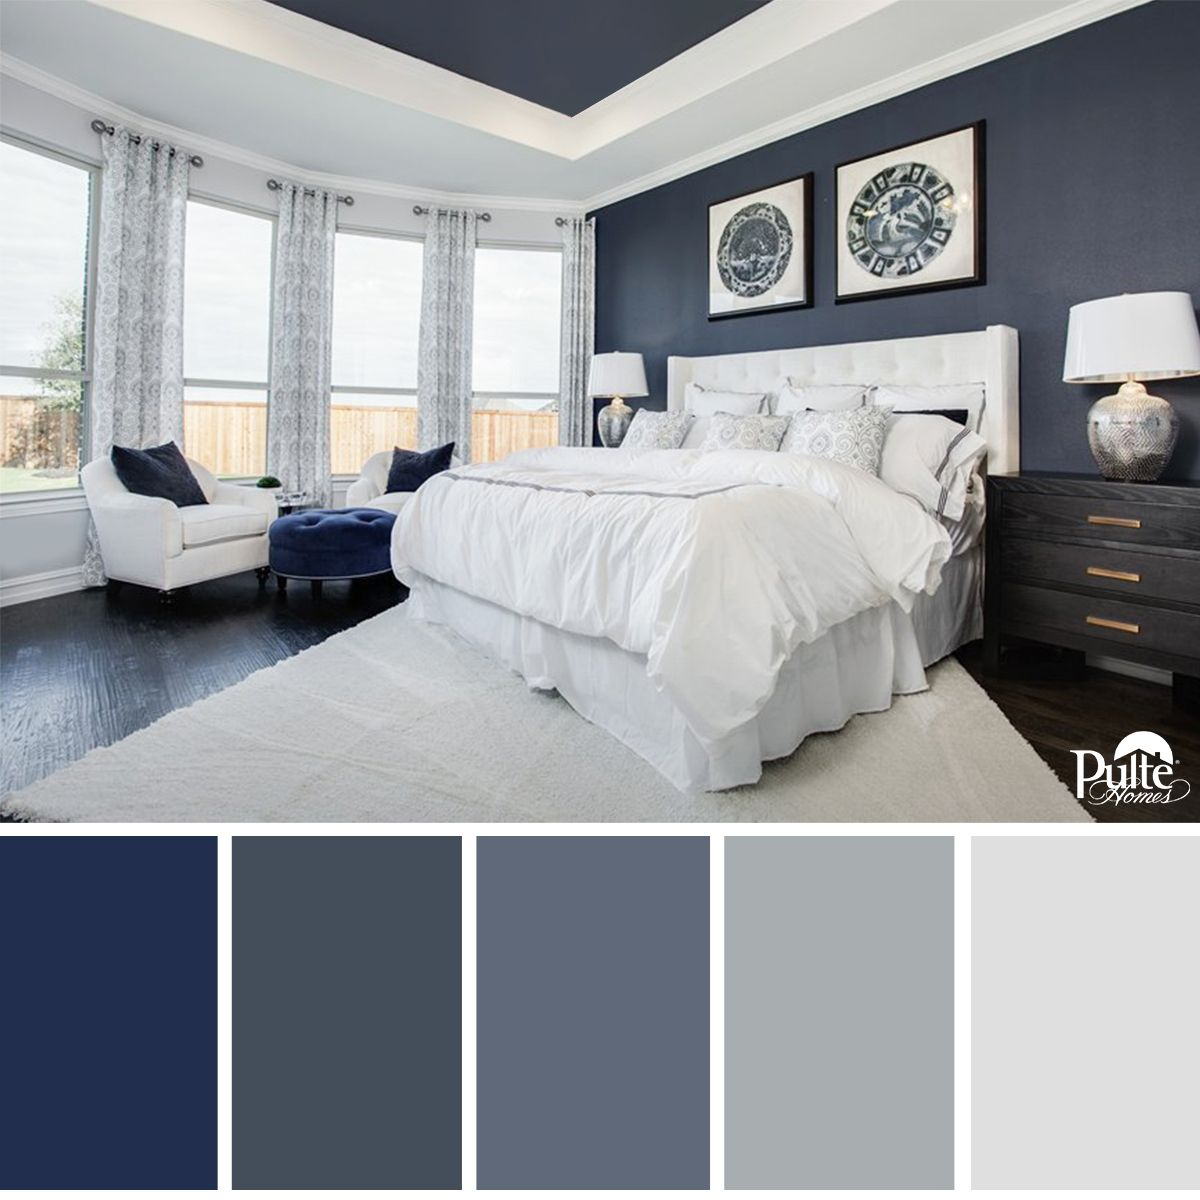 Merveilleux This Bedroom Design Has The Right Idea. The Rich Blue Color Palette And  Decor Create A Dreamy Space That Begs You To Kick Back And Relax. | Pulte  Homes